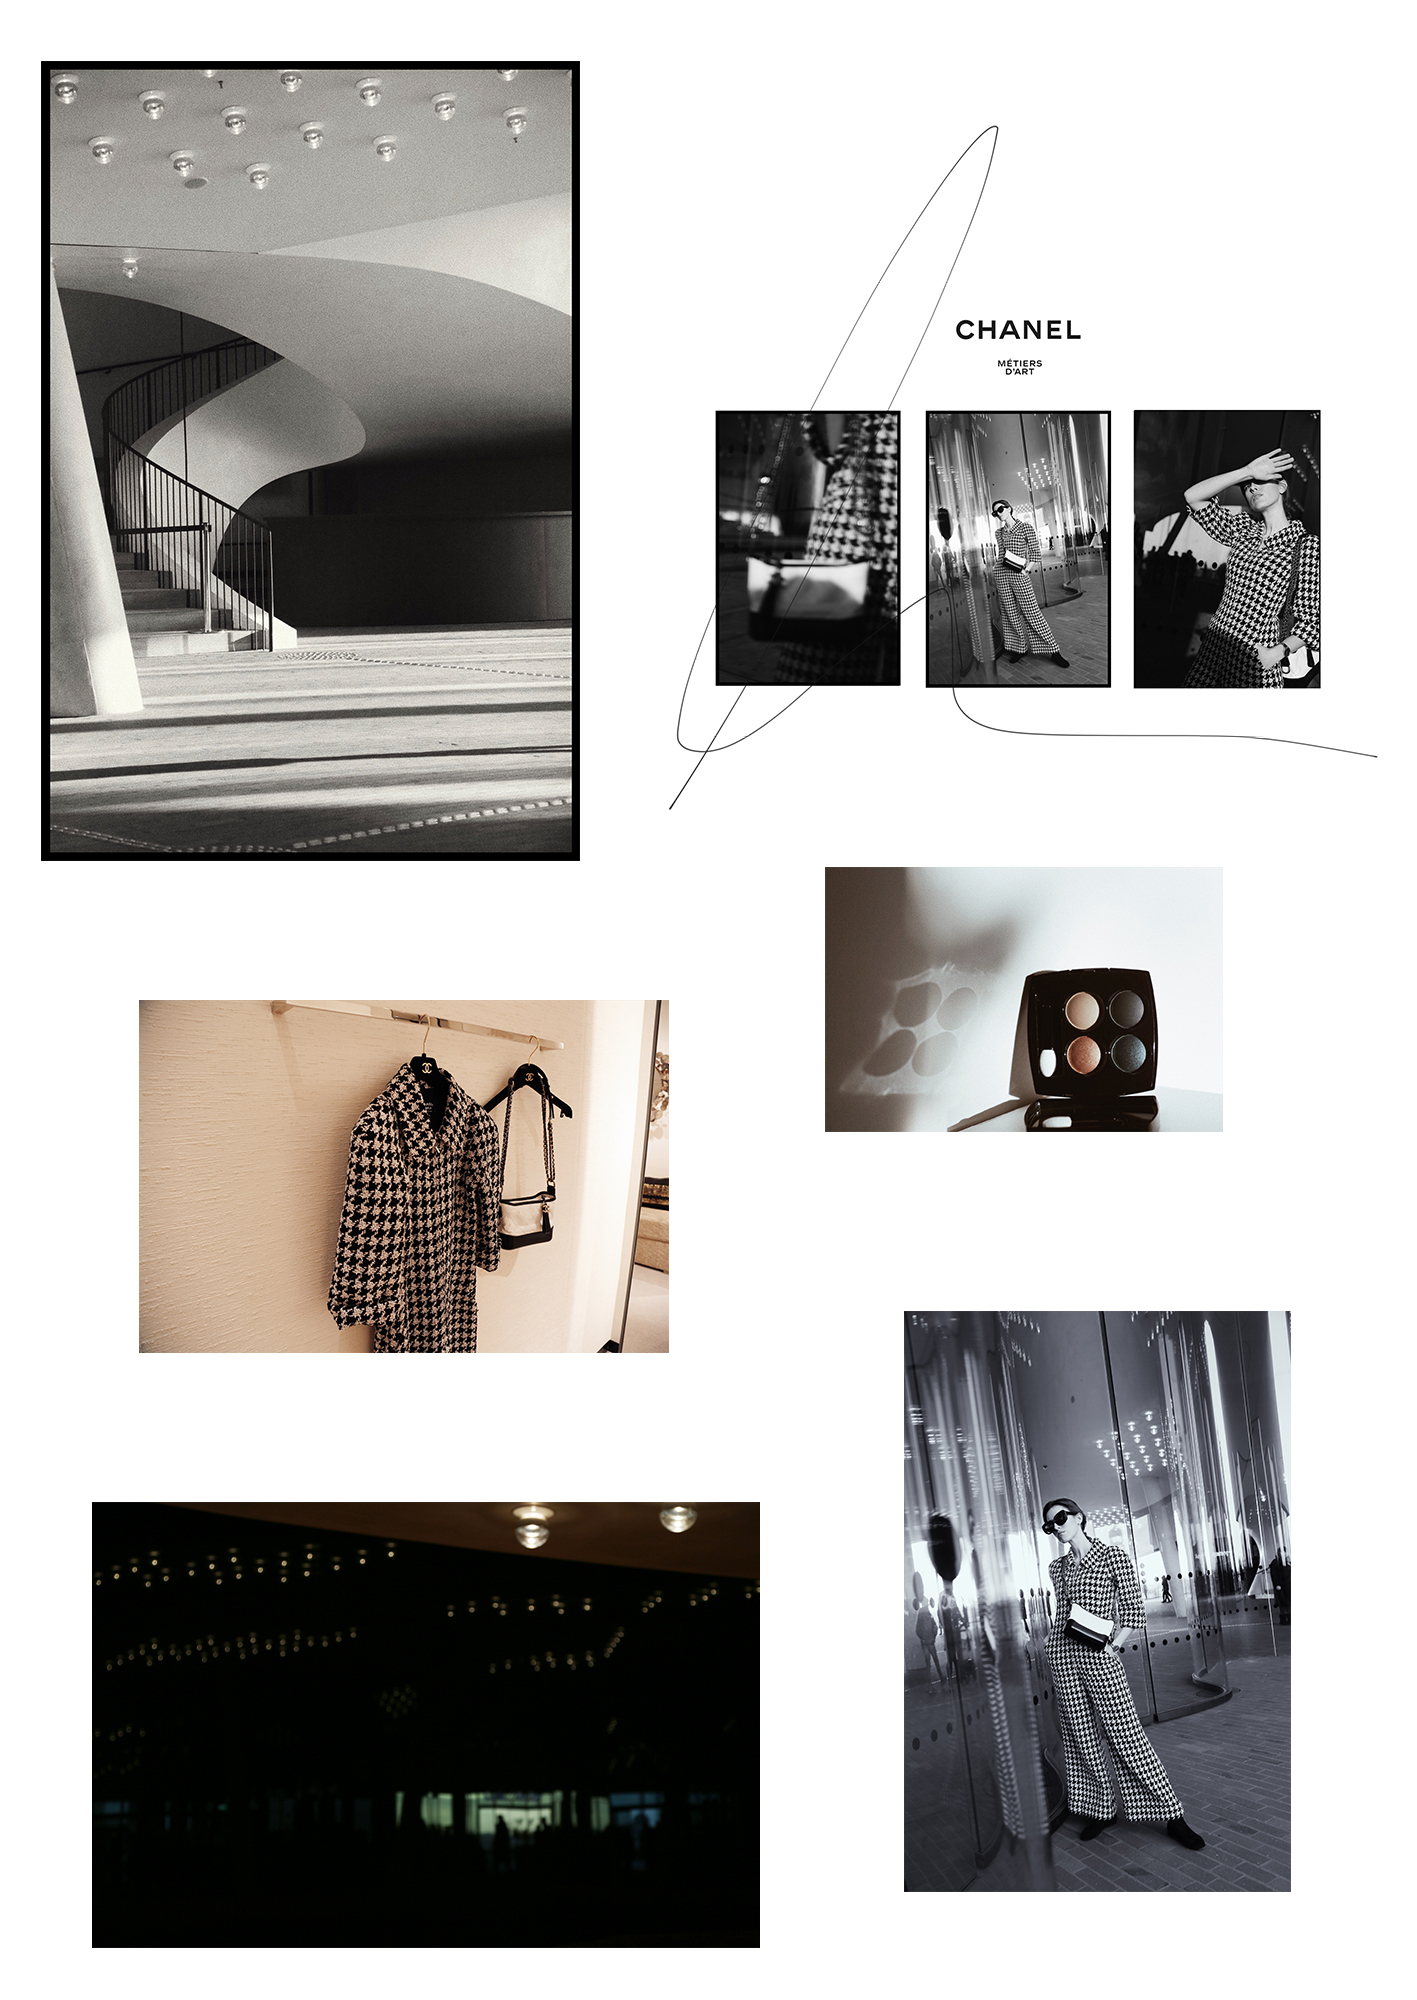 A day with CHANEL in Hamburg by Sylvia Haghjoo